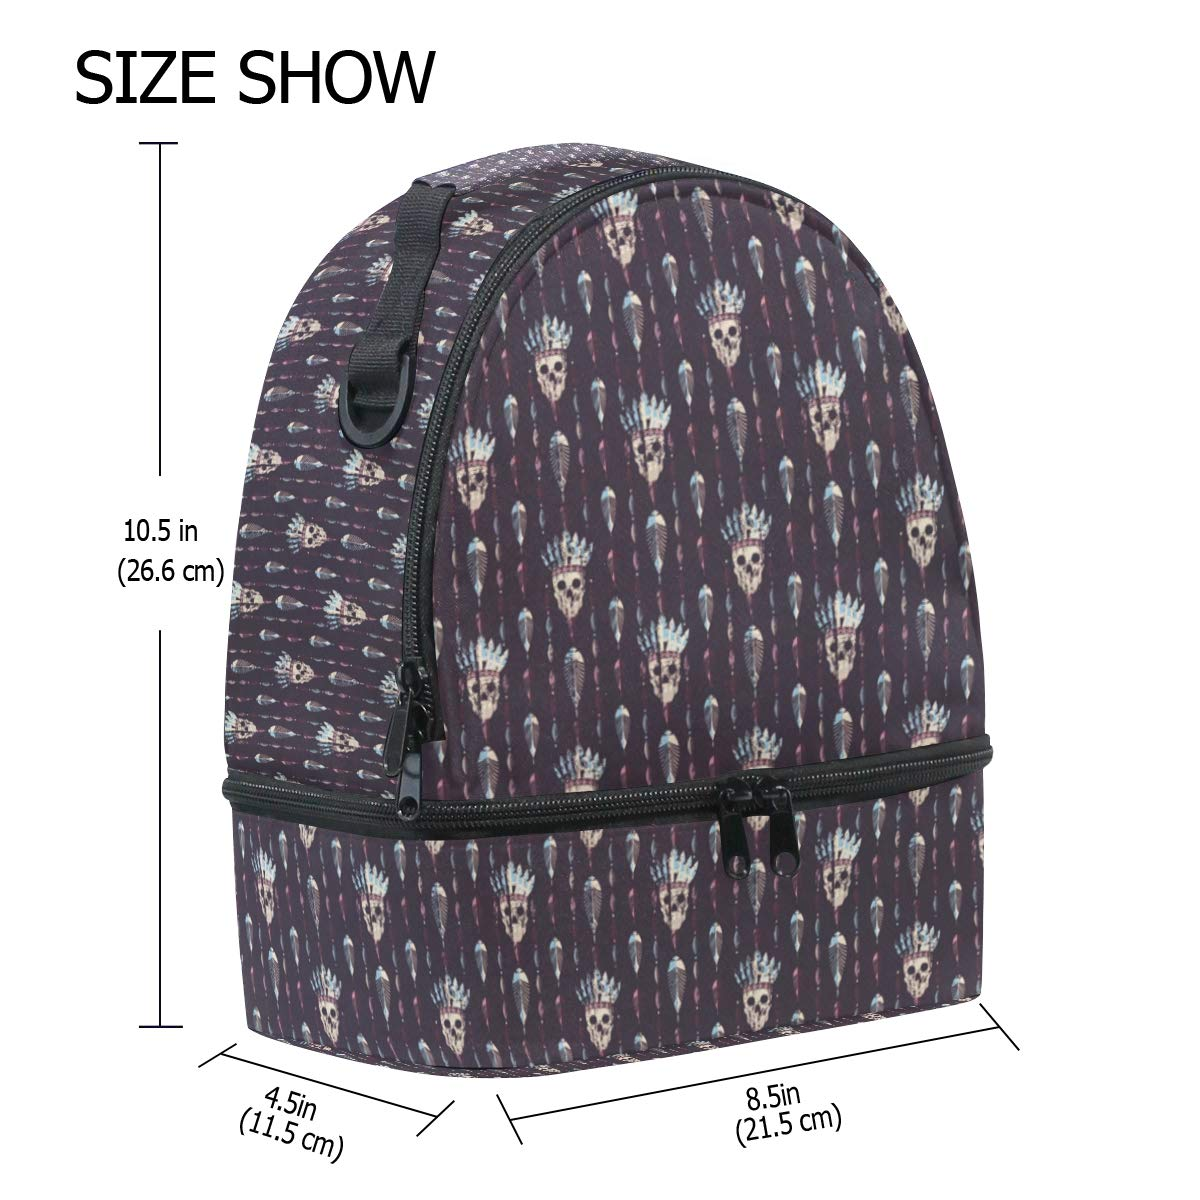 f8e6d2cbffe1 Amazon.com - HEOEH Indain Hat Skull Purple Lunch Bag Insulated Lunch ...